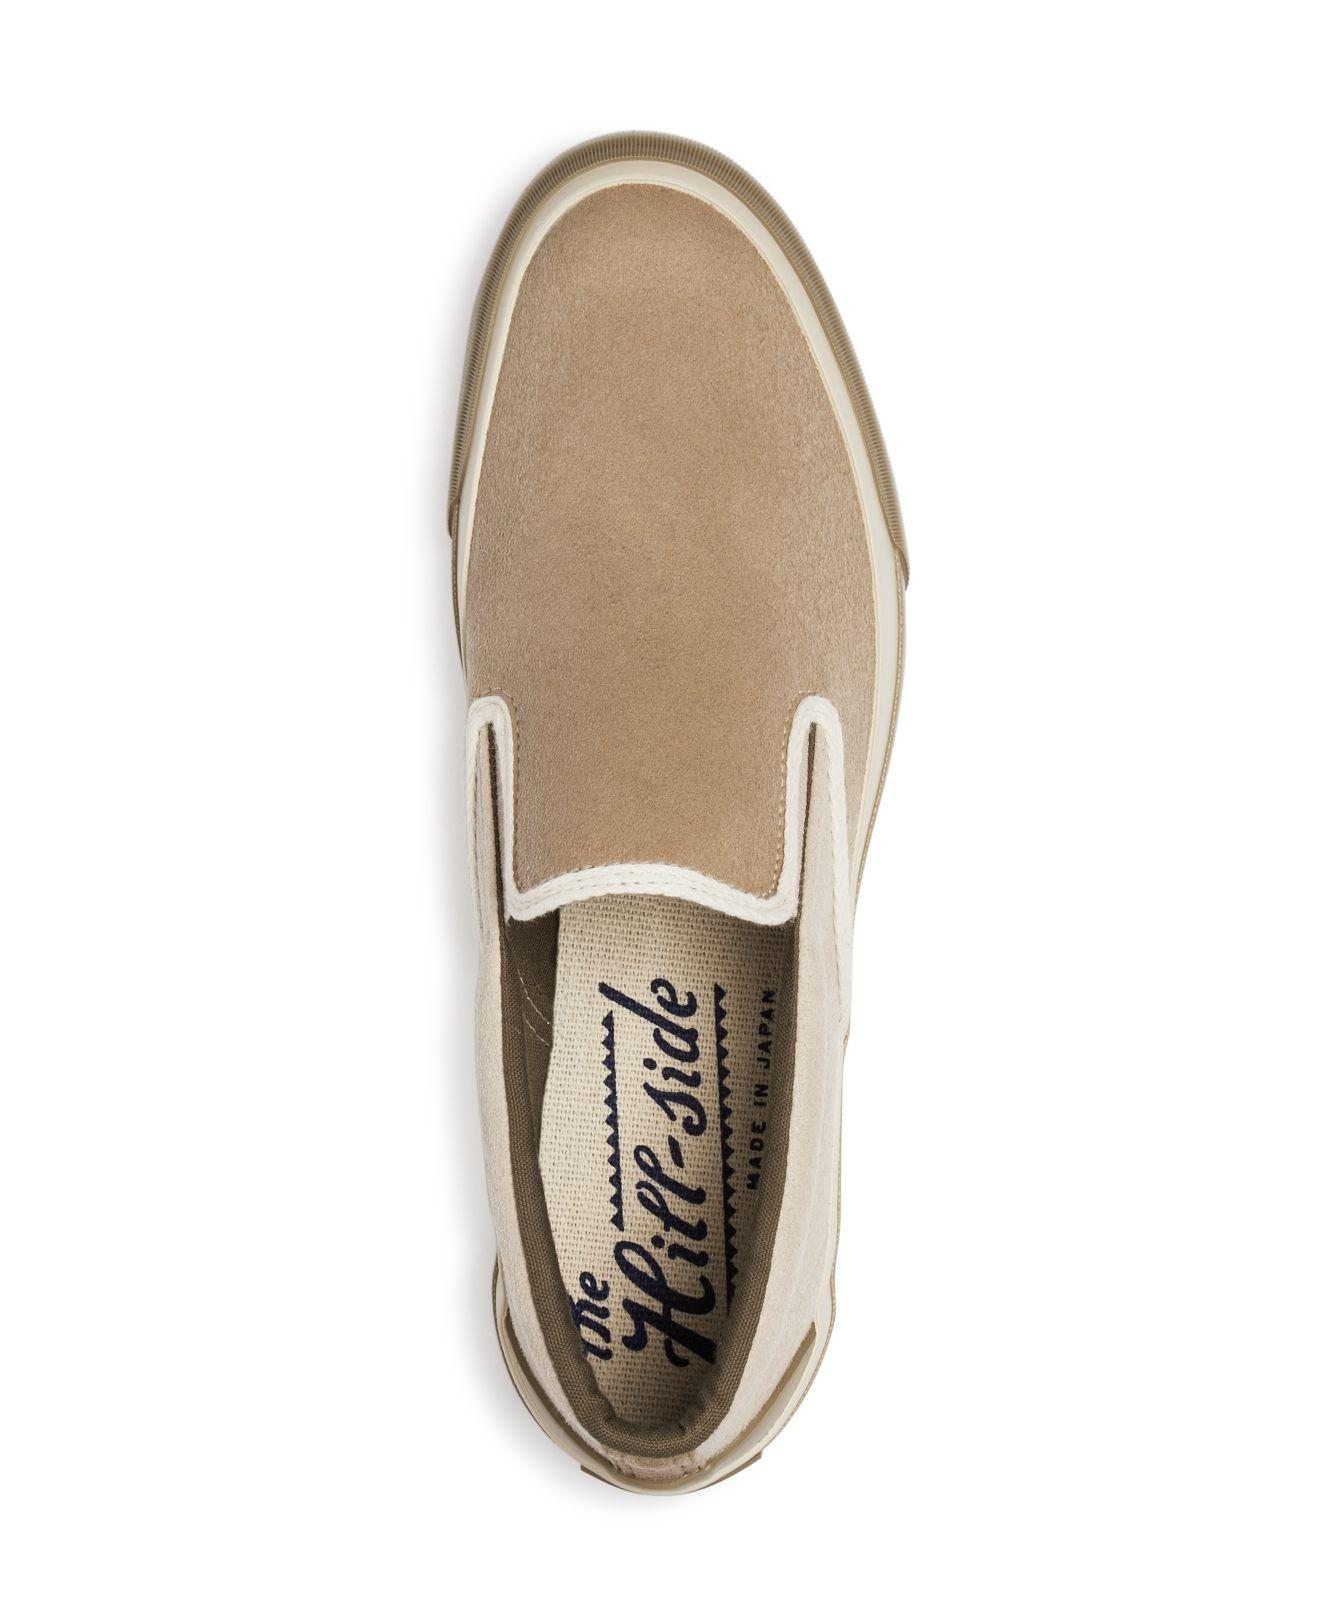 c8377794cdda2a Lyst - The Hill-side Two-tone Synth Suede Slip-on Sneakers in ...